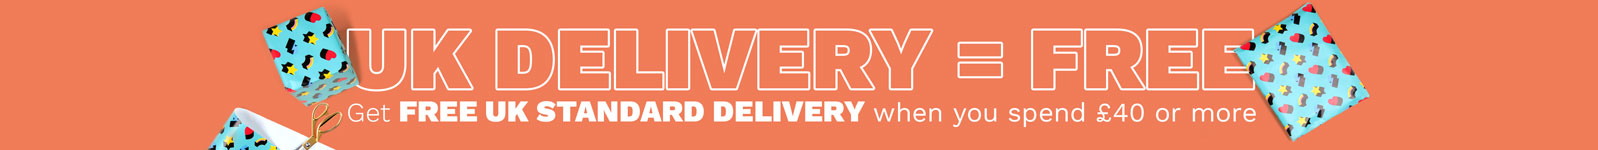 06-20 - Free UK Delivery (Not Promo)